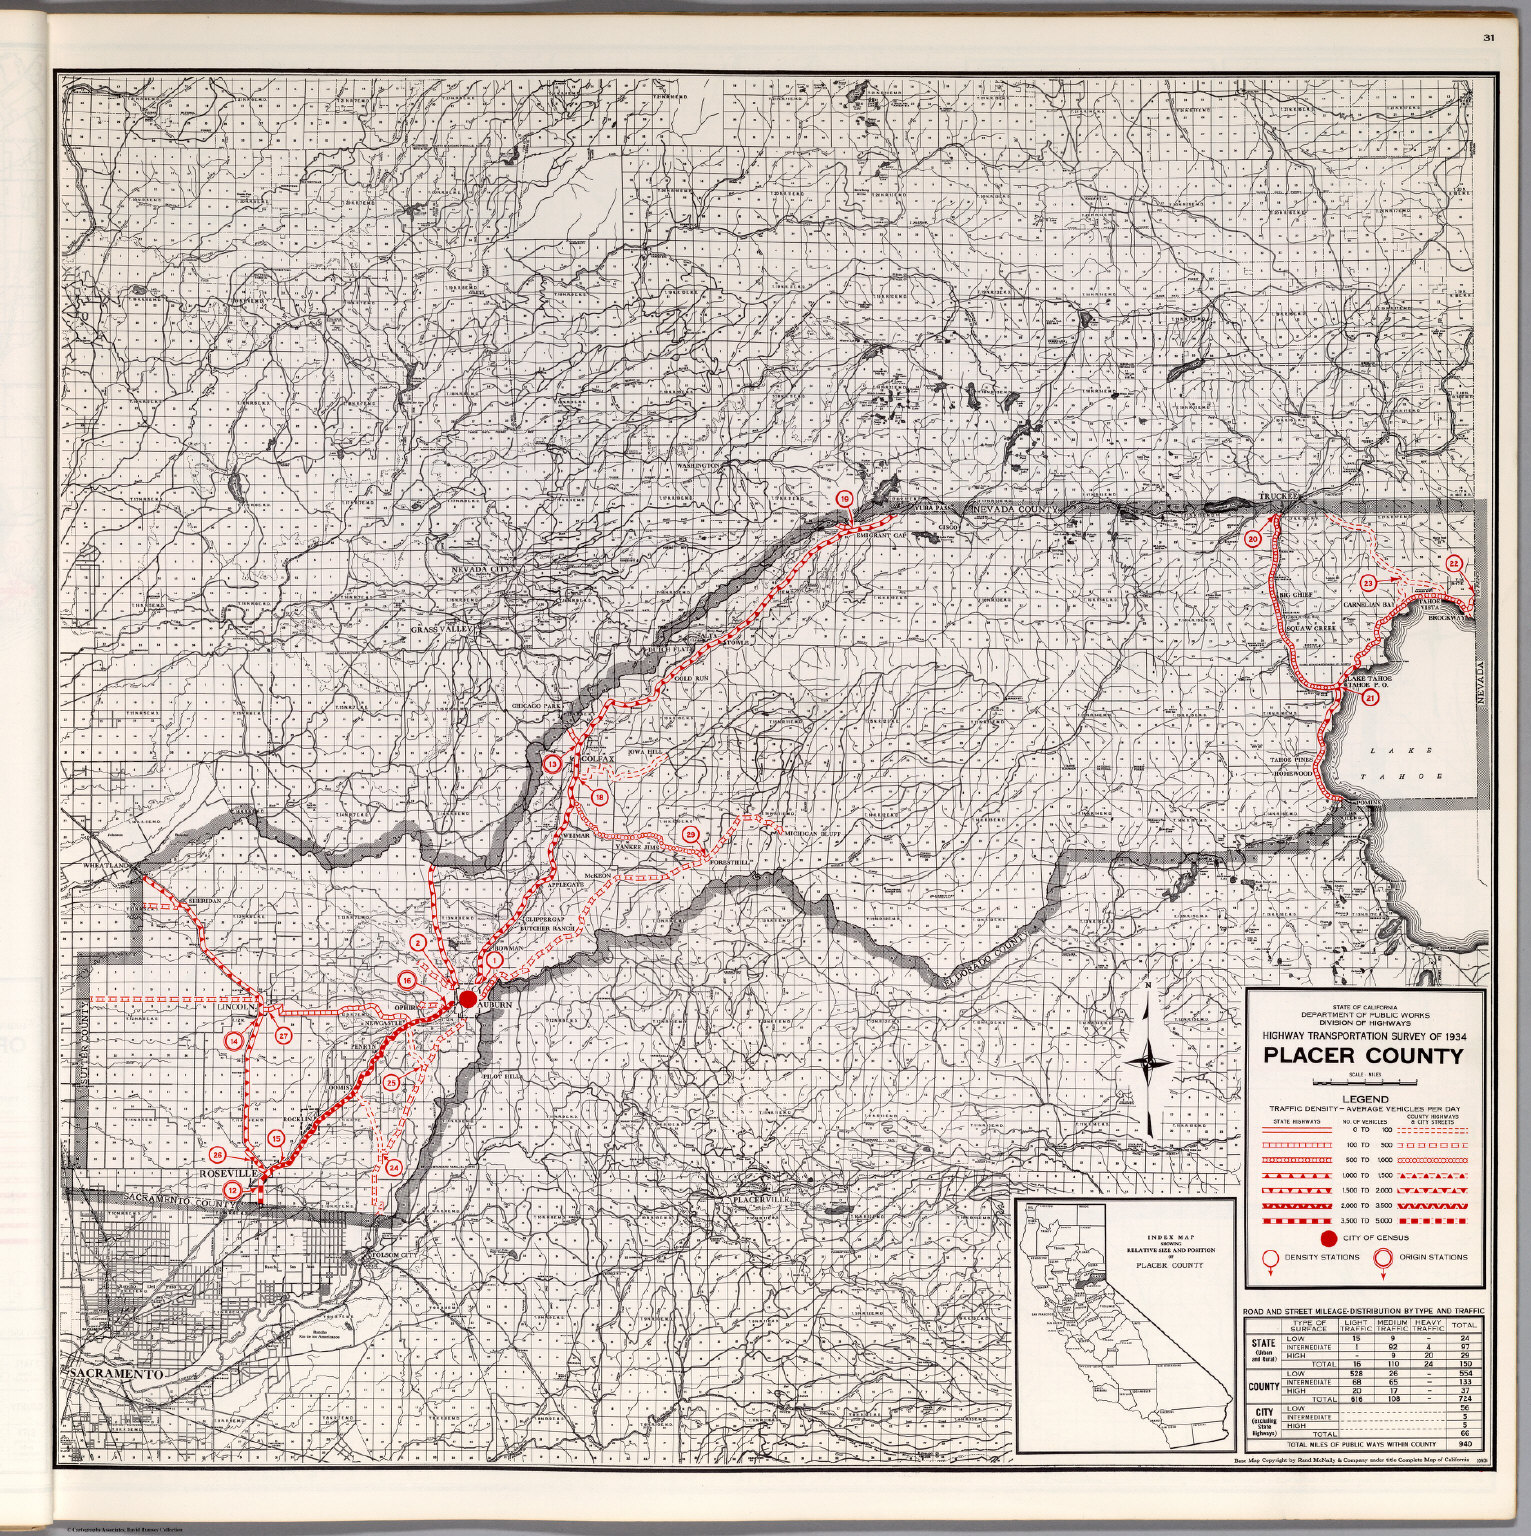 Placer County. - David Rumsey Historical Map Collection